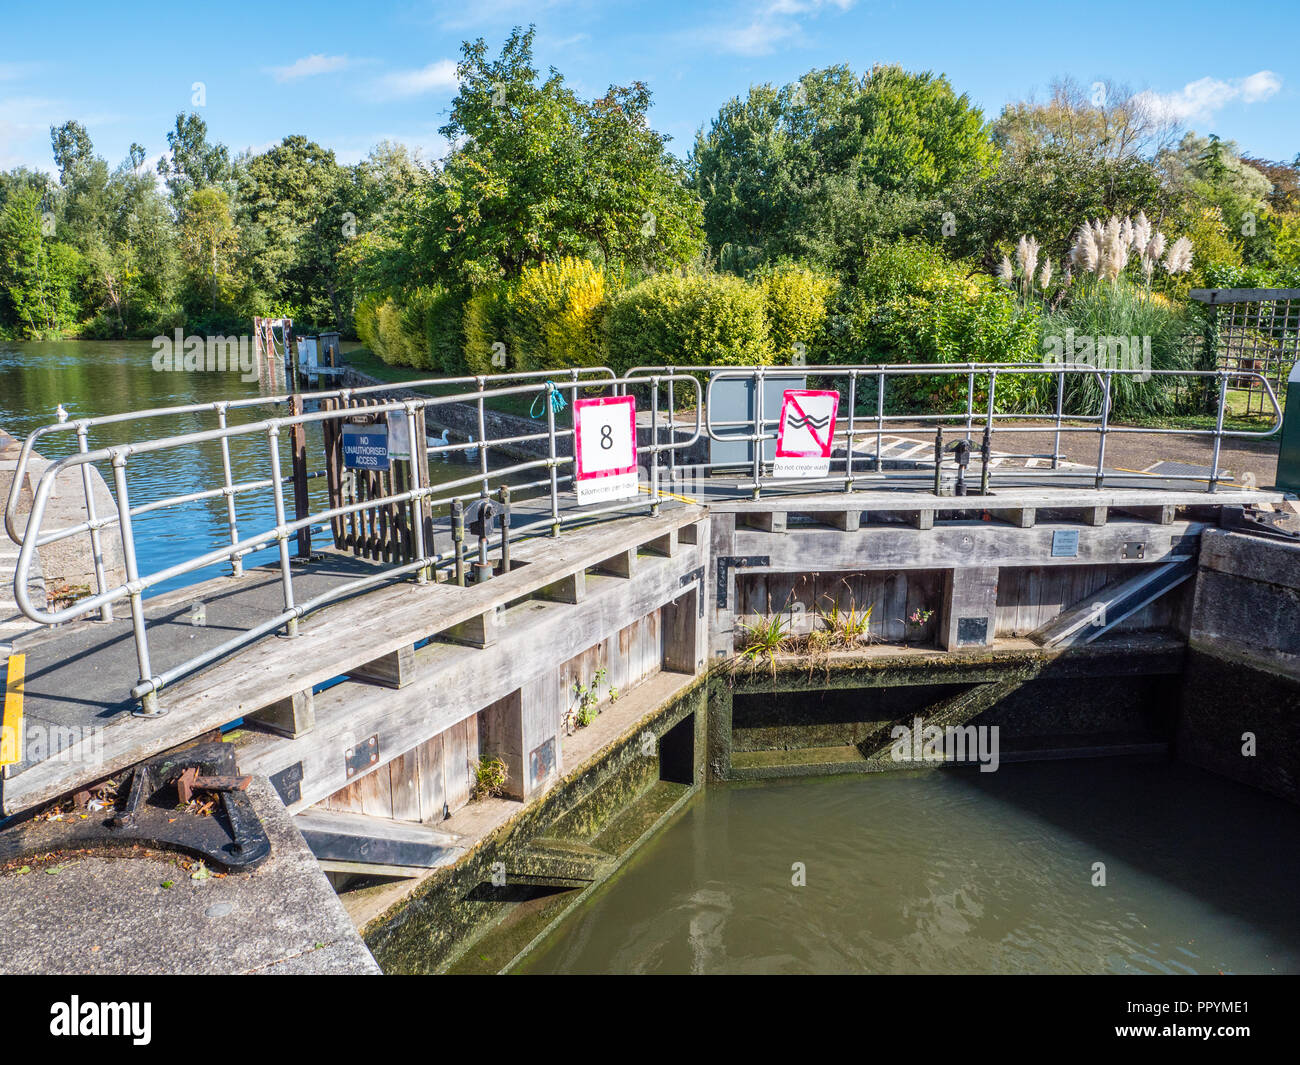 Lock Gates, Iffley Lock, River Thames, Oxford, Oxfordshire, England, UK, GB. Stock Photo